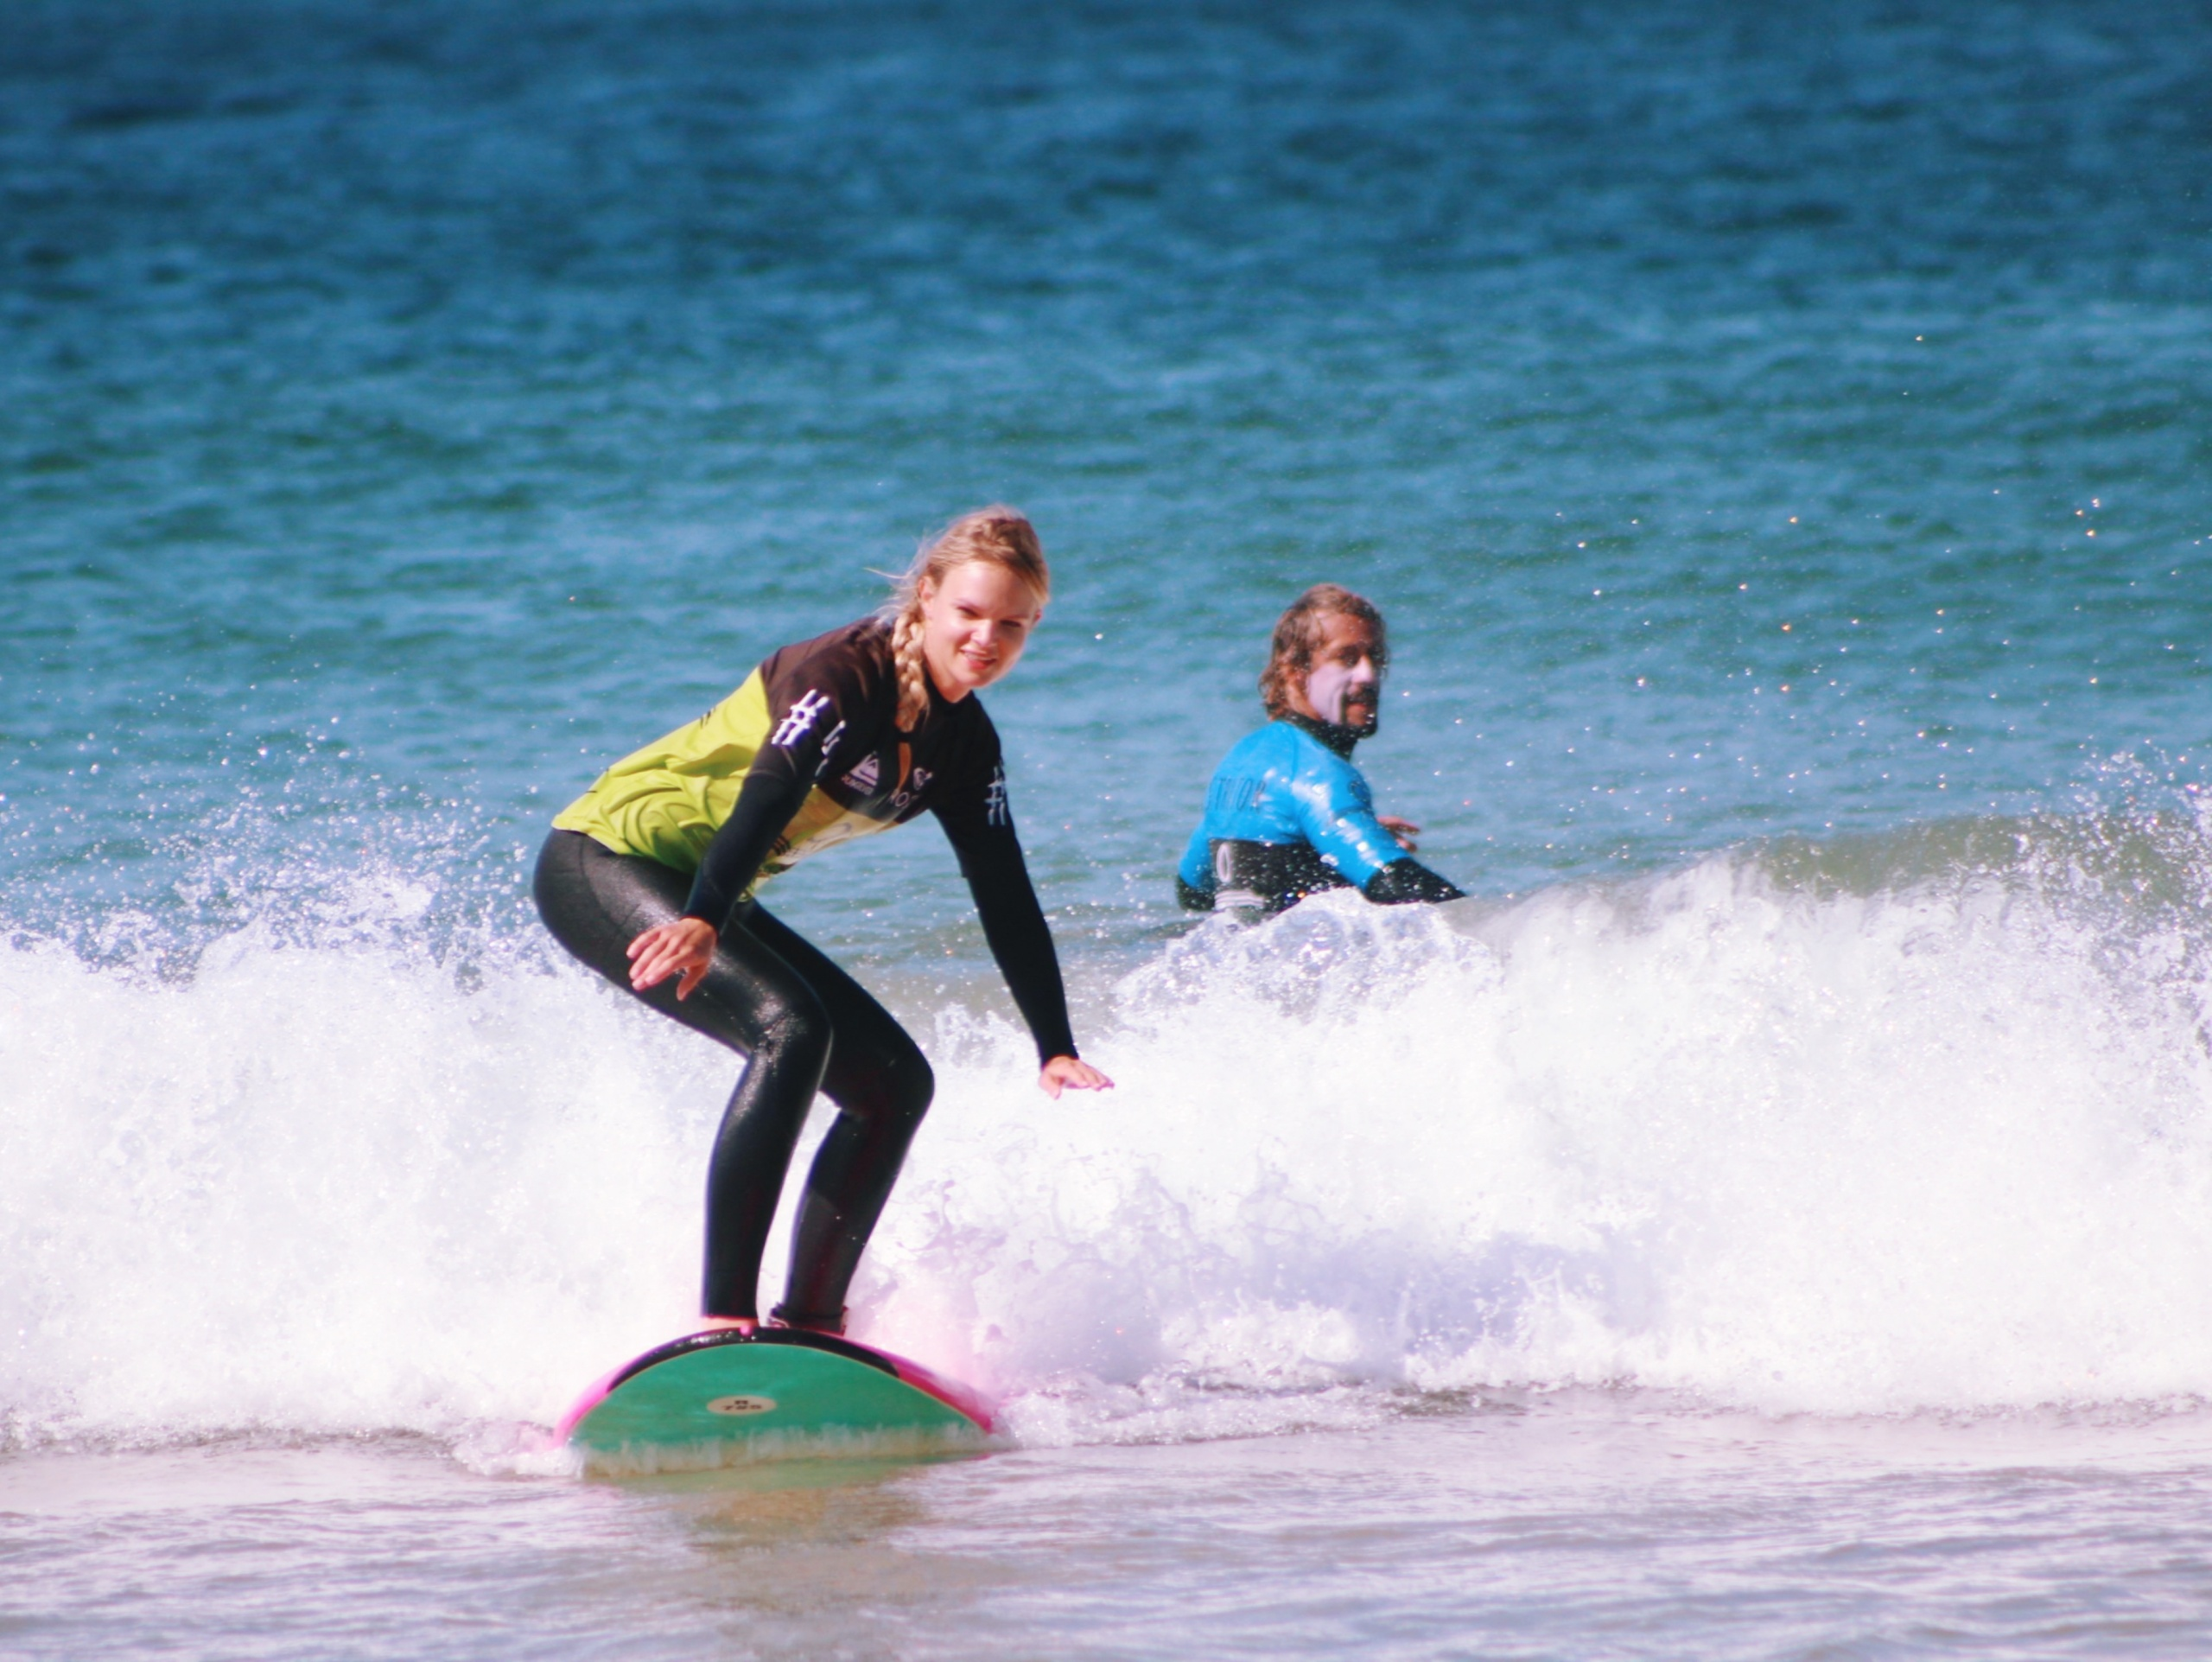 surf coach teaching a woman in surfing